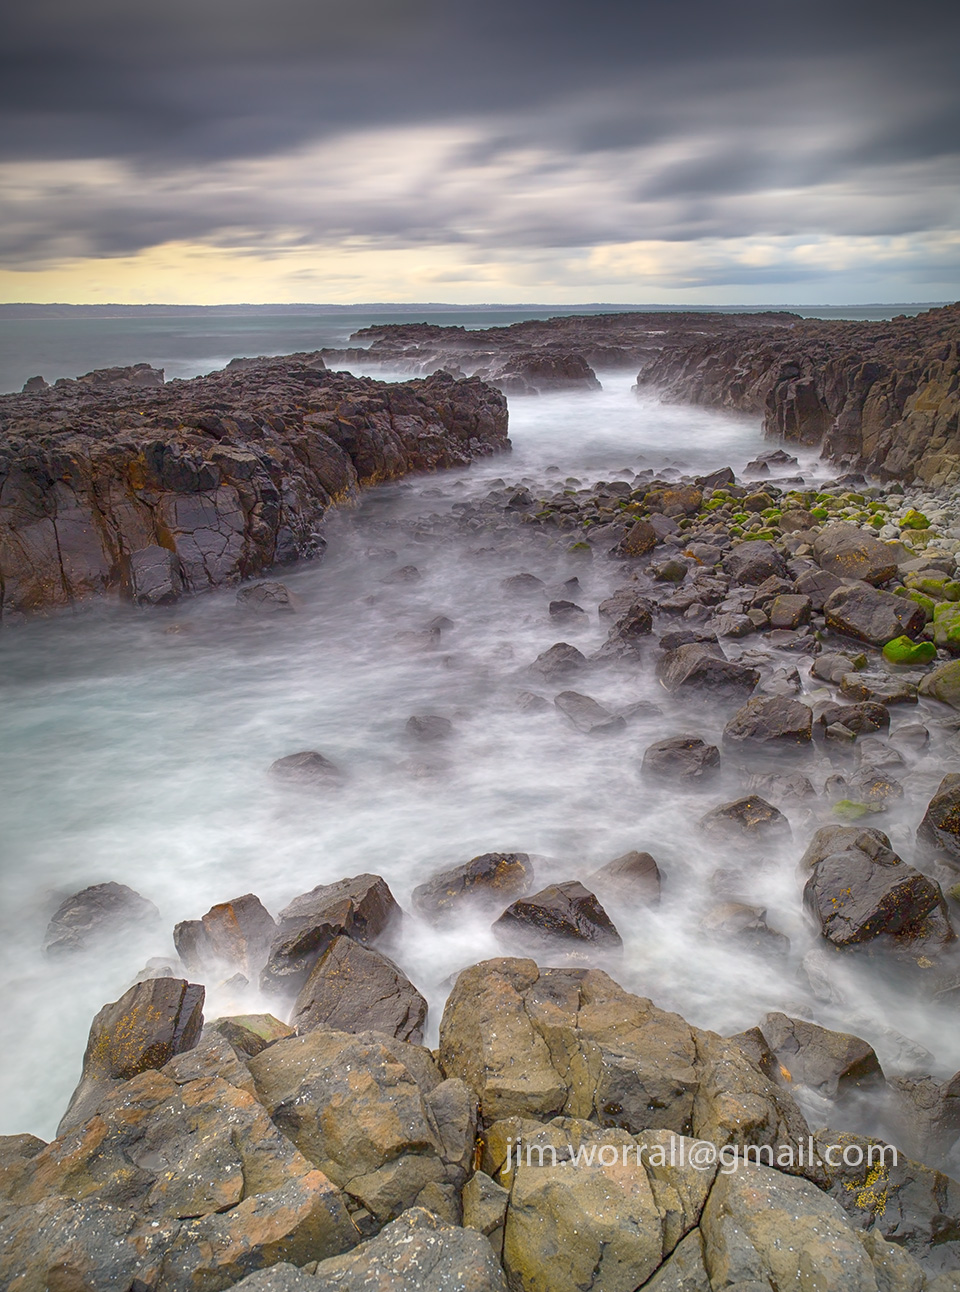 jim worrall, cowrie beach, phillip island, long exposure